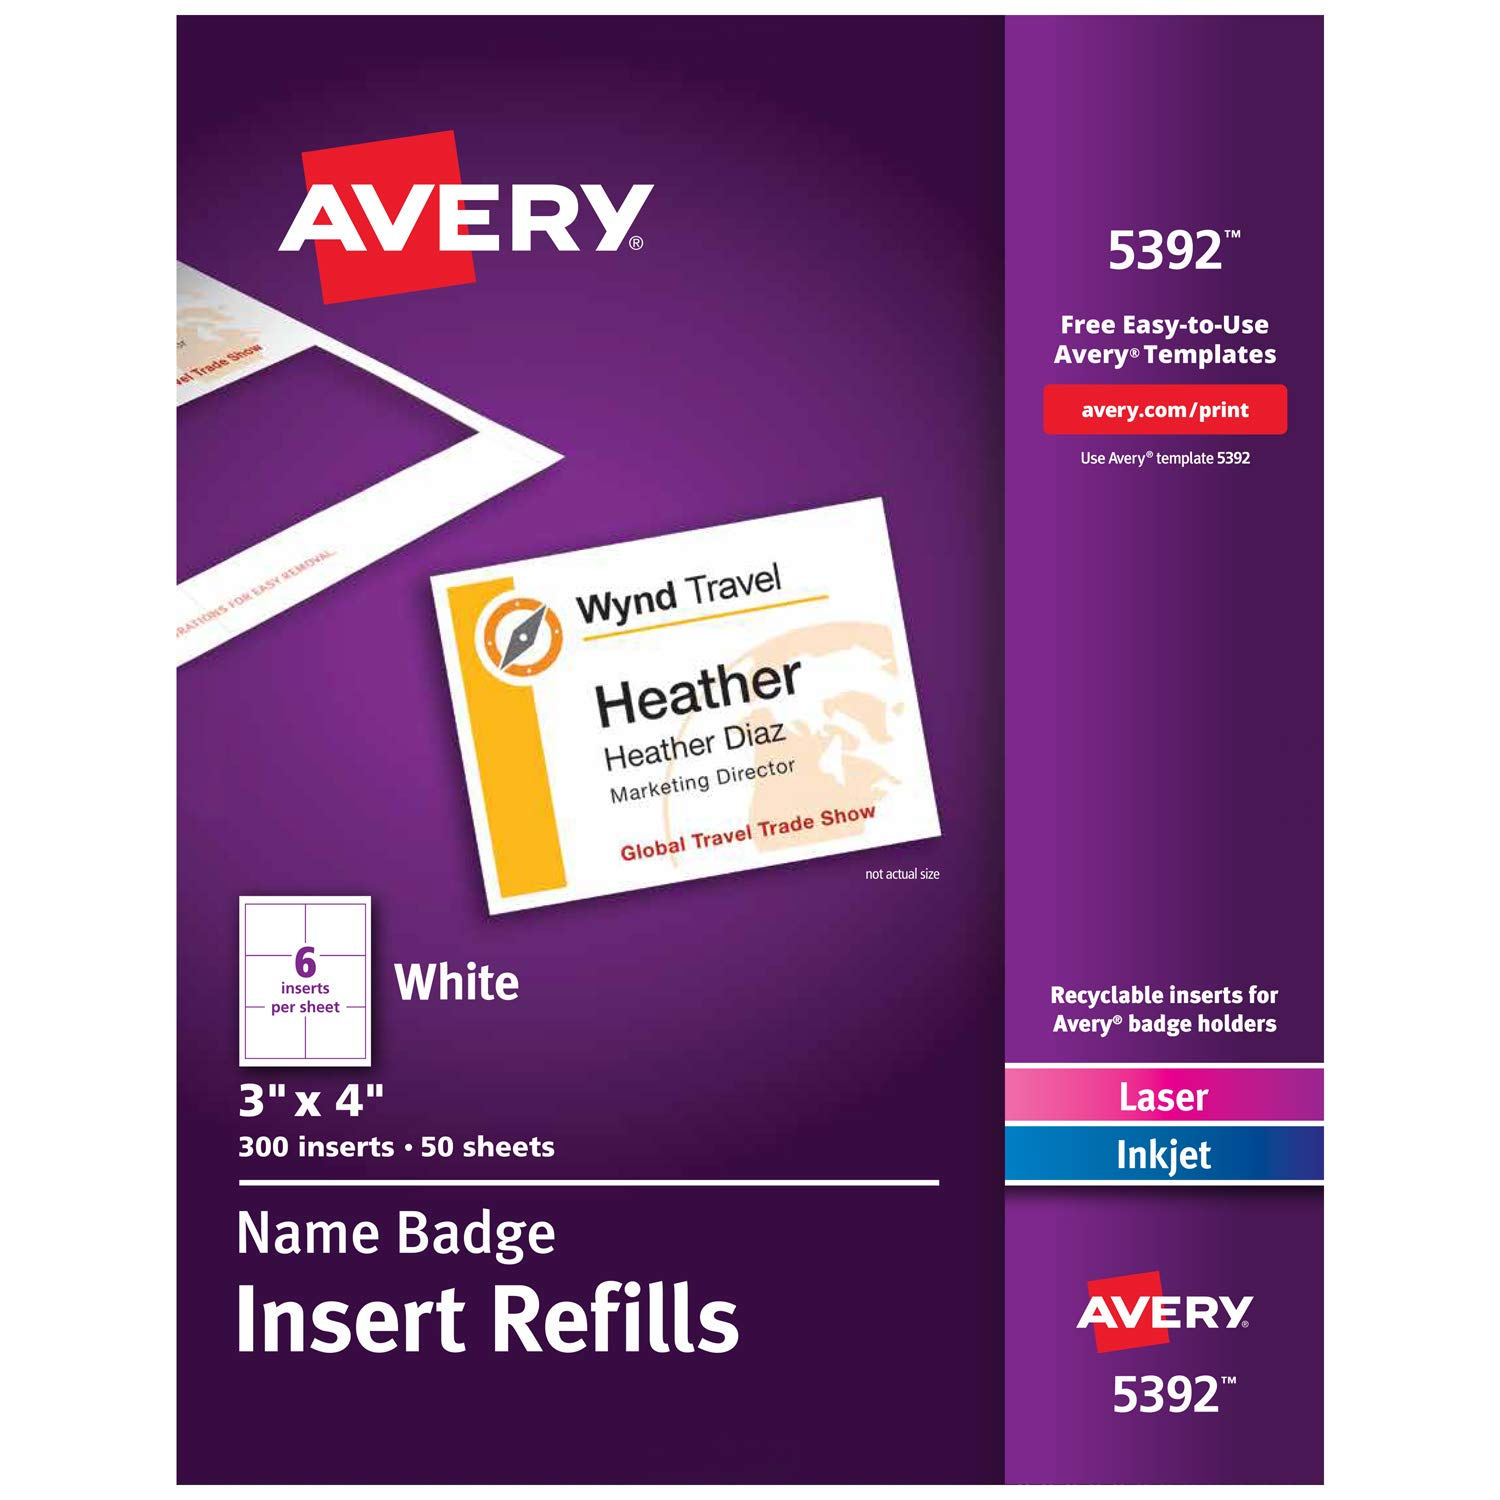 Avery Name Badge Inserts, Print or Write, 3 x 4, 1,500 Cardstock Refills, Case Pack of 5 (5392) 3 x 4 Avery Products Corporation 5007278205392